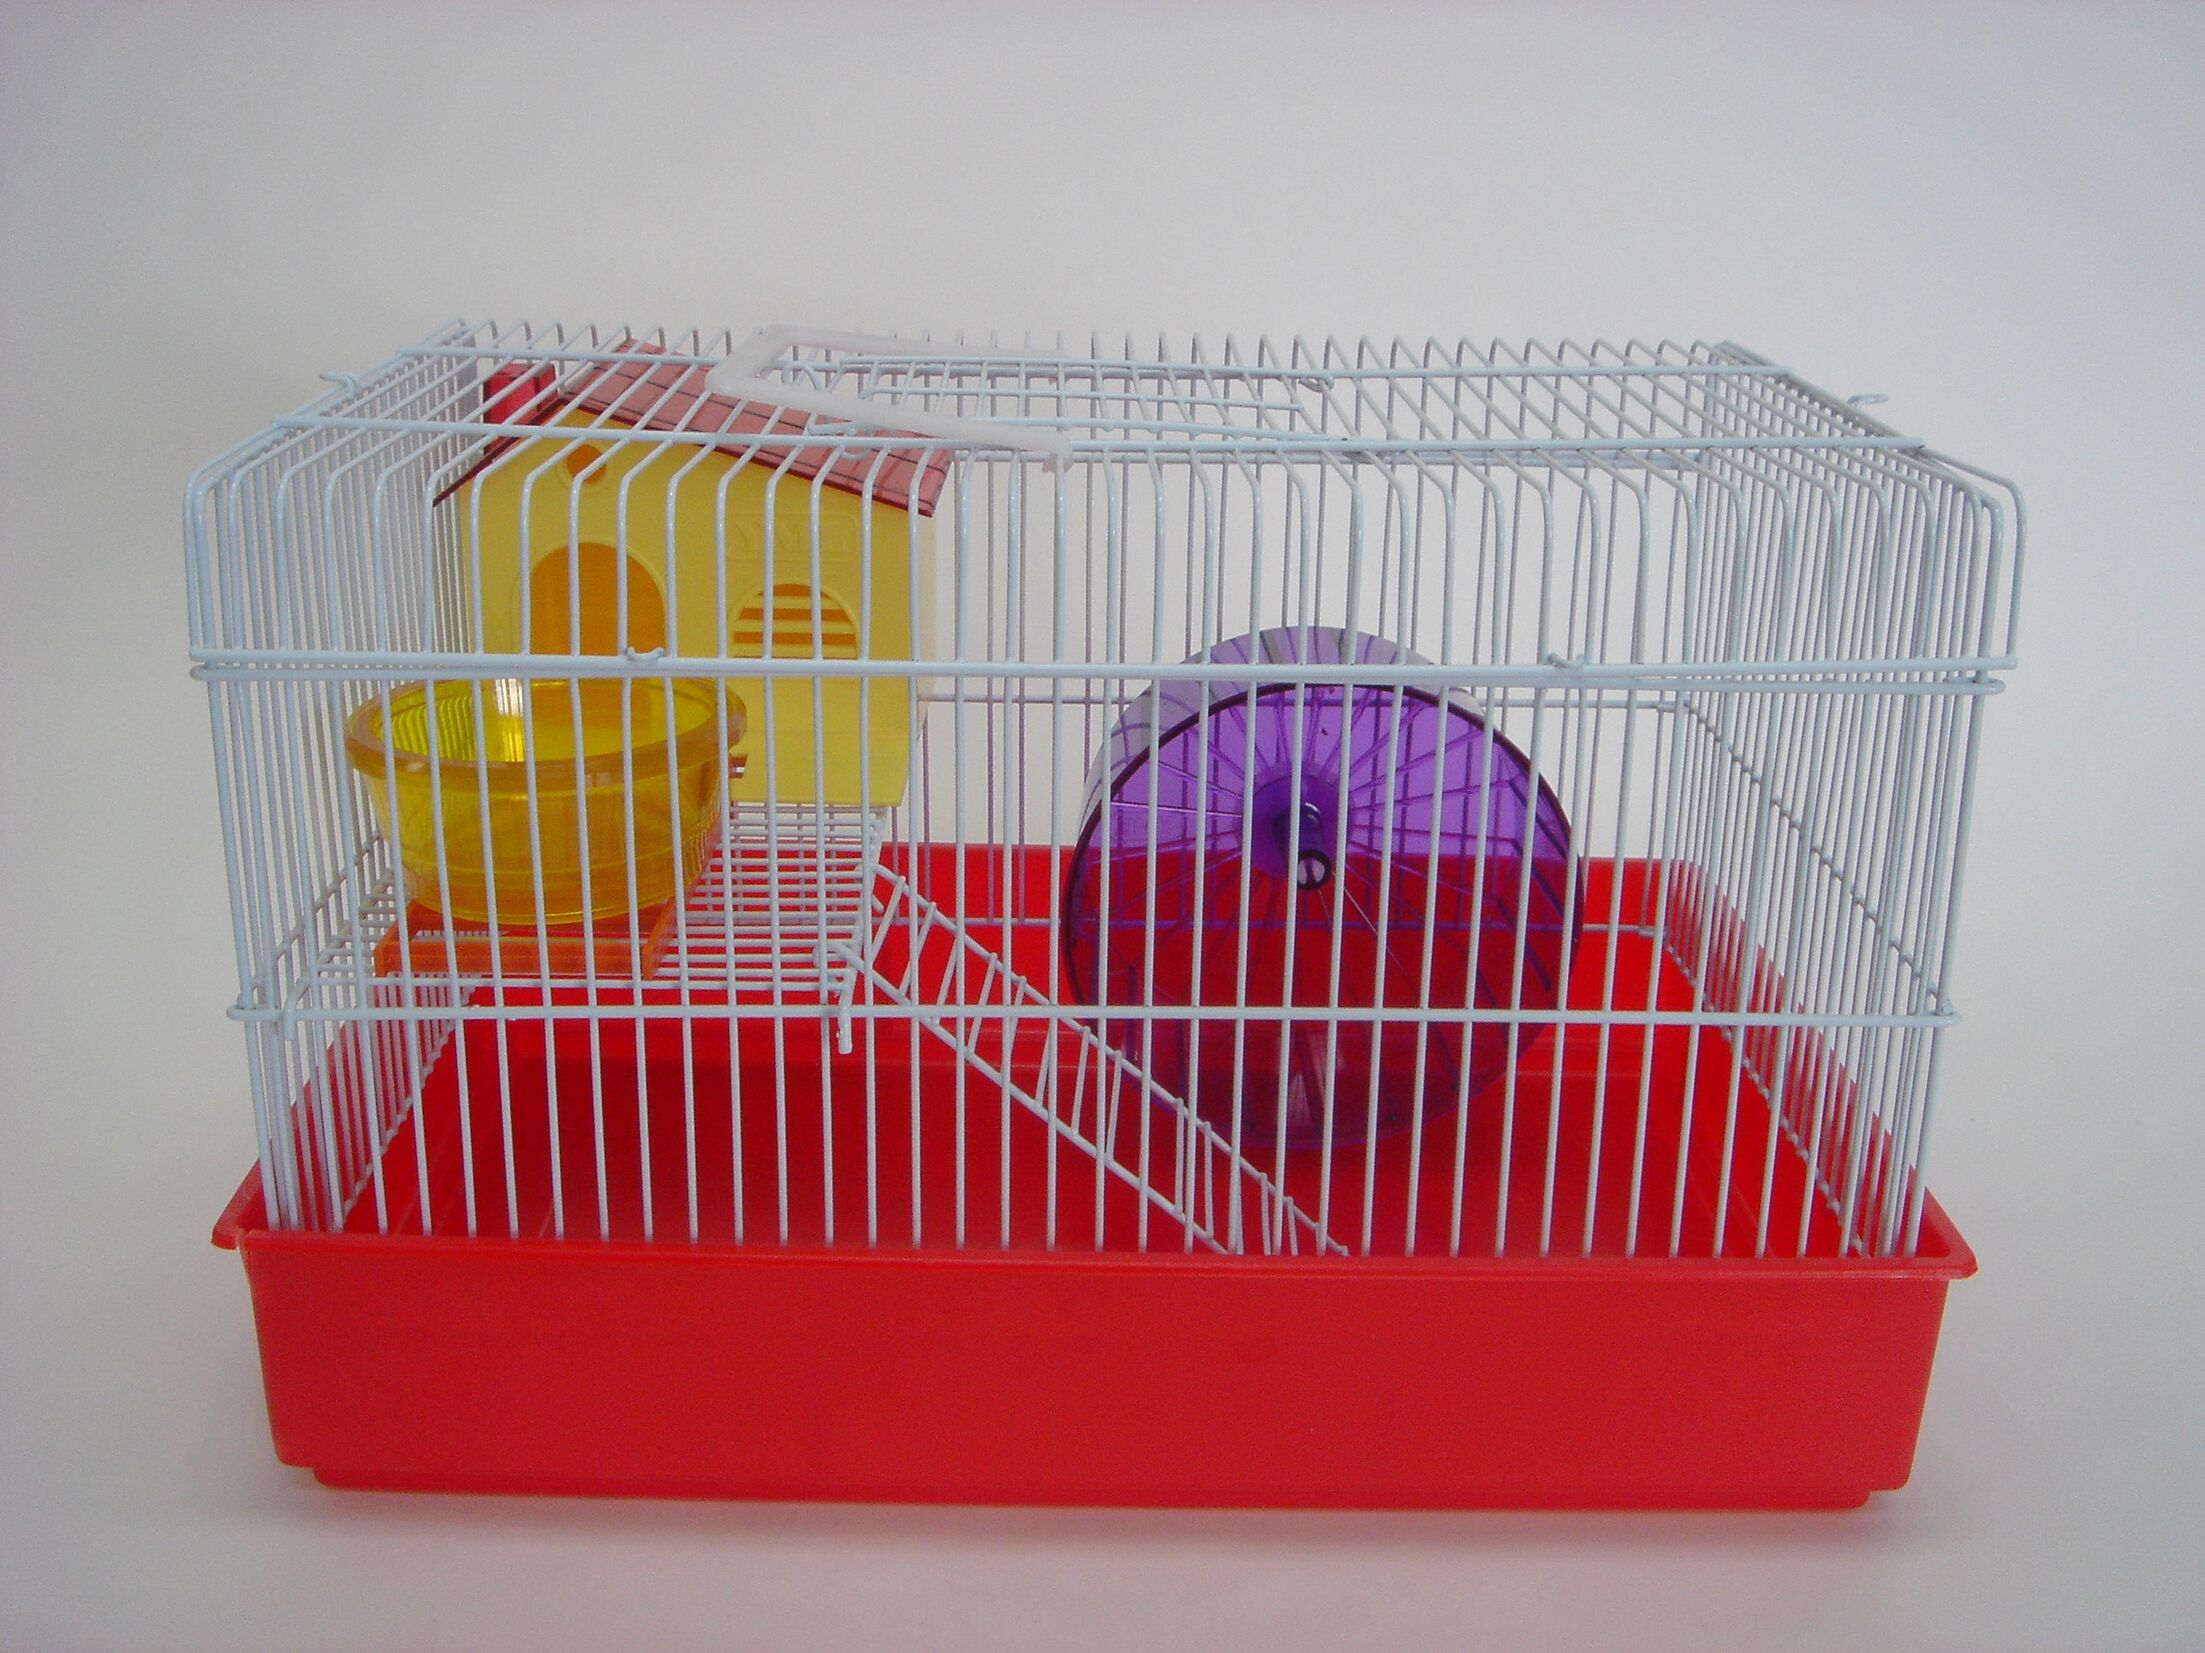 2-Level Small Animal Cage Color: Red